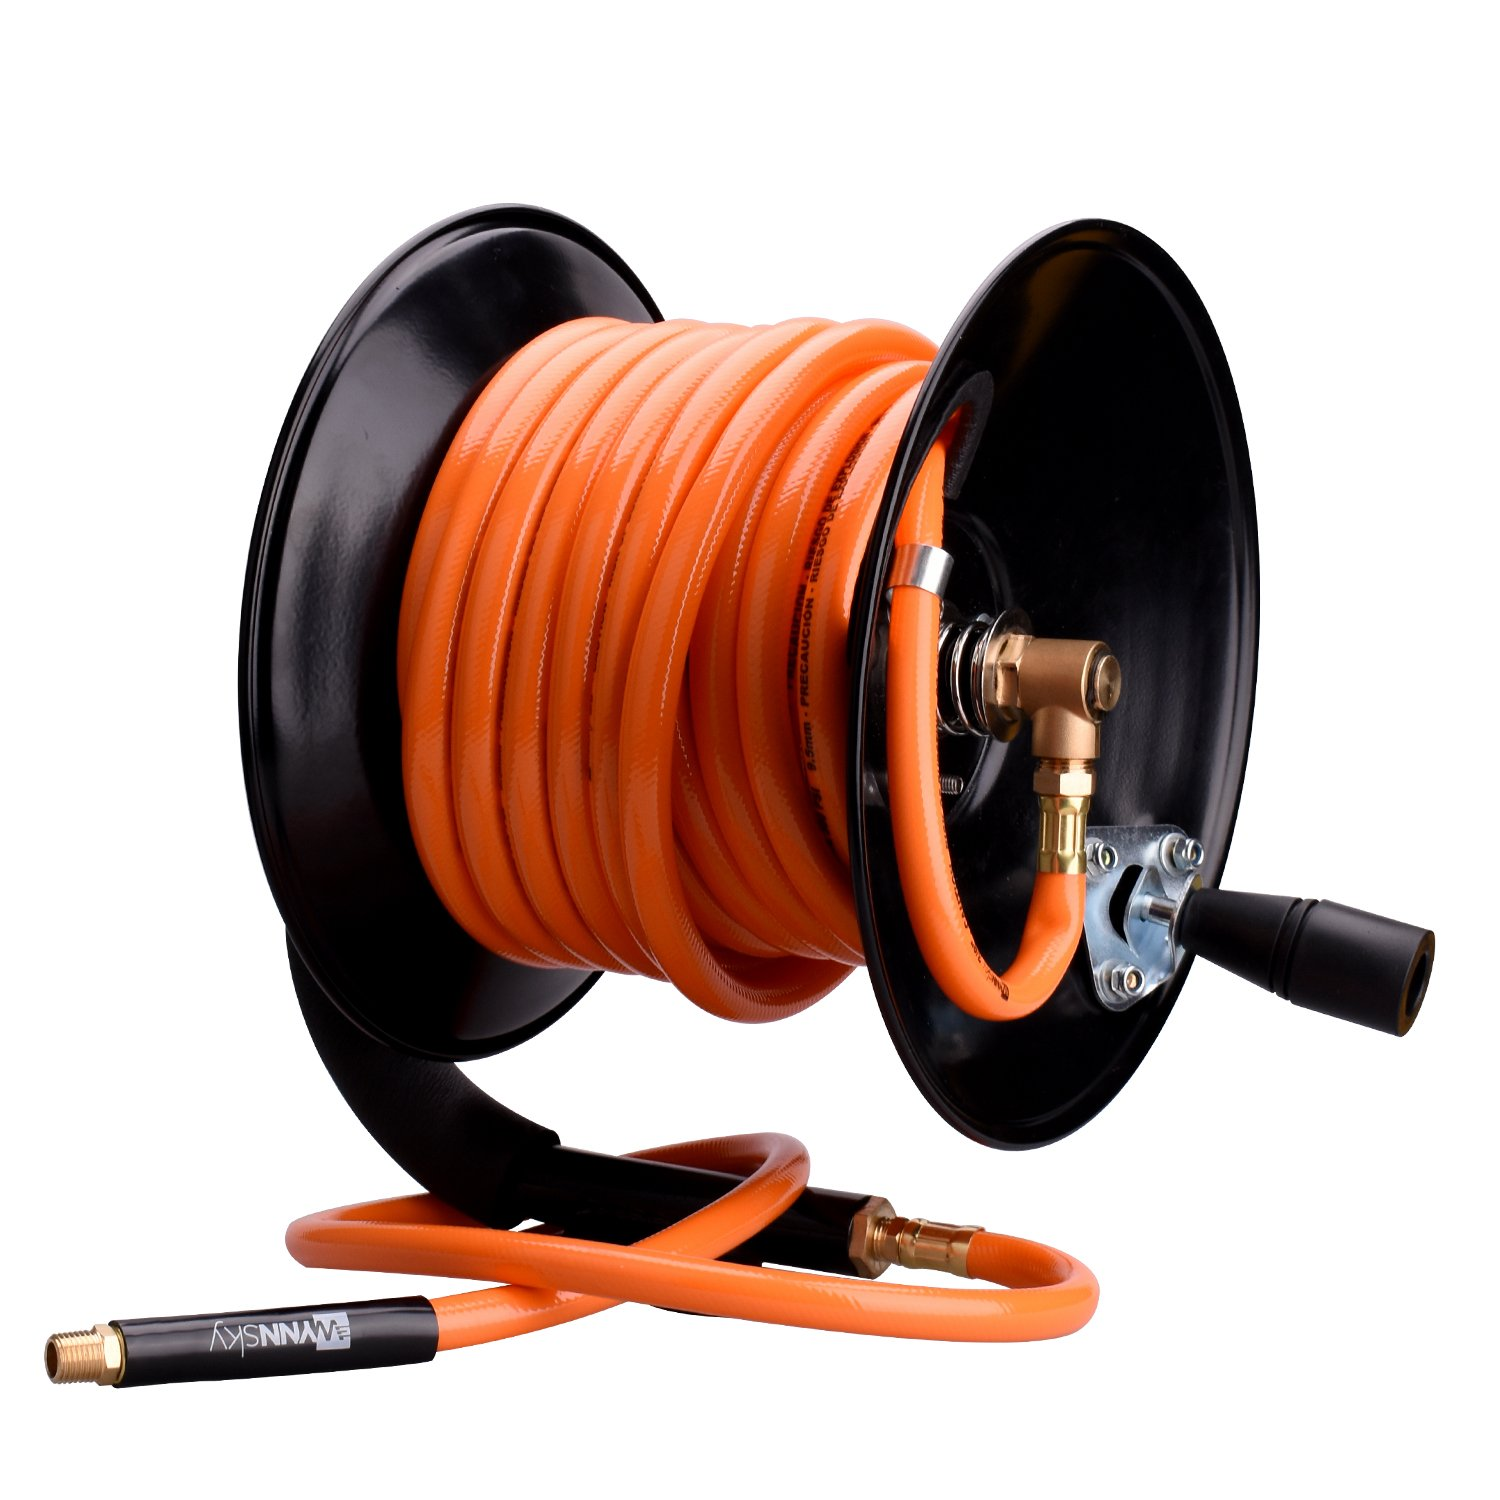 WYNNsky Steel Manual Air Hose Reel Include 3/8''x50FT PVC Air Compressor Hose with 1/4'' MNPT Brass Endings. Lead-in Hose Bonus